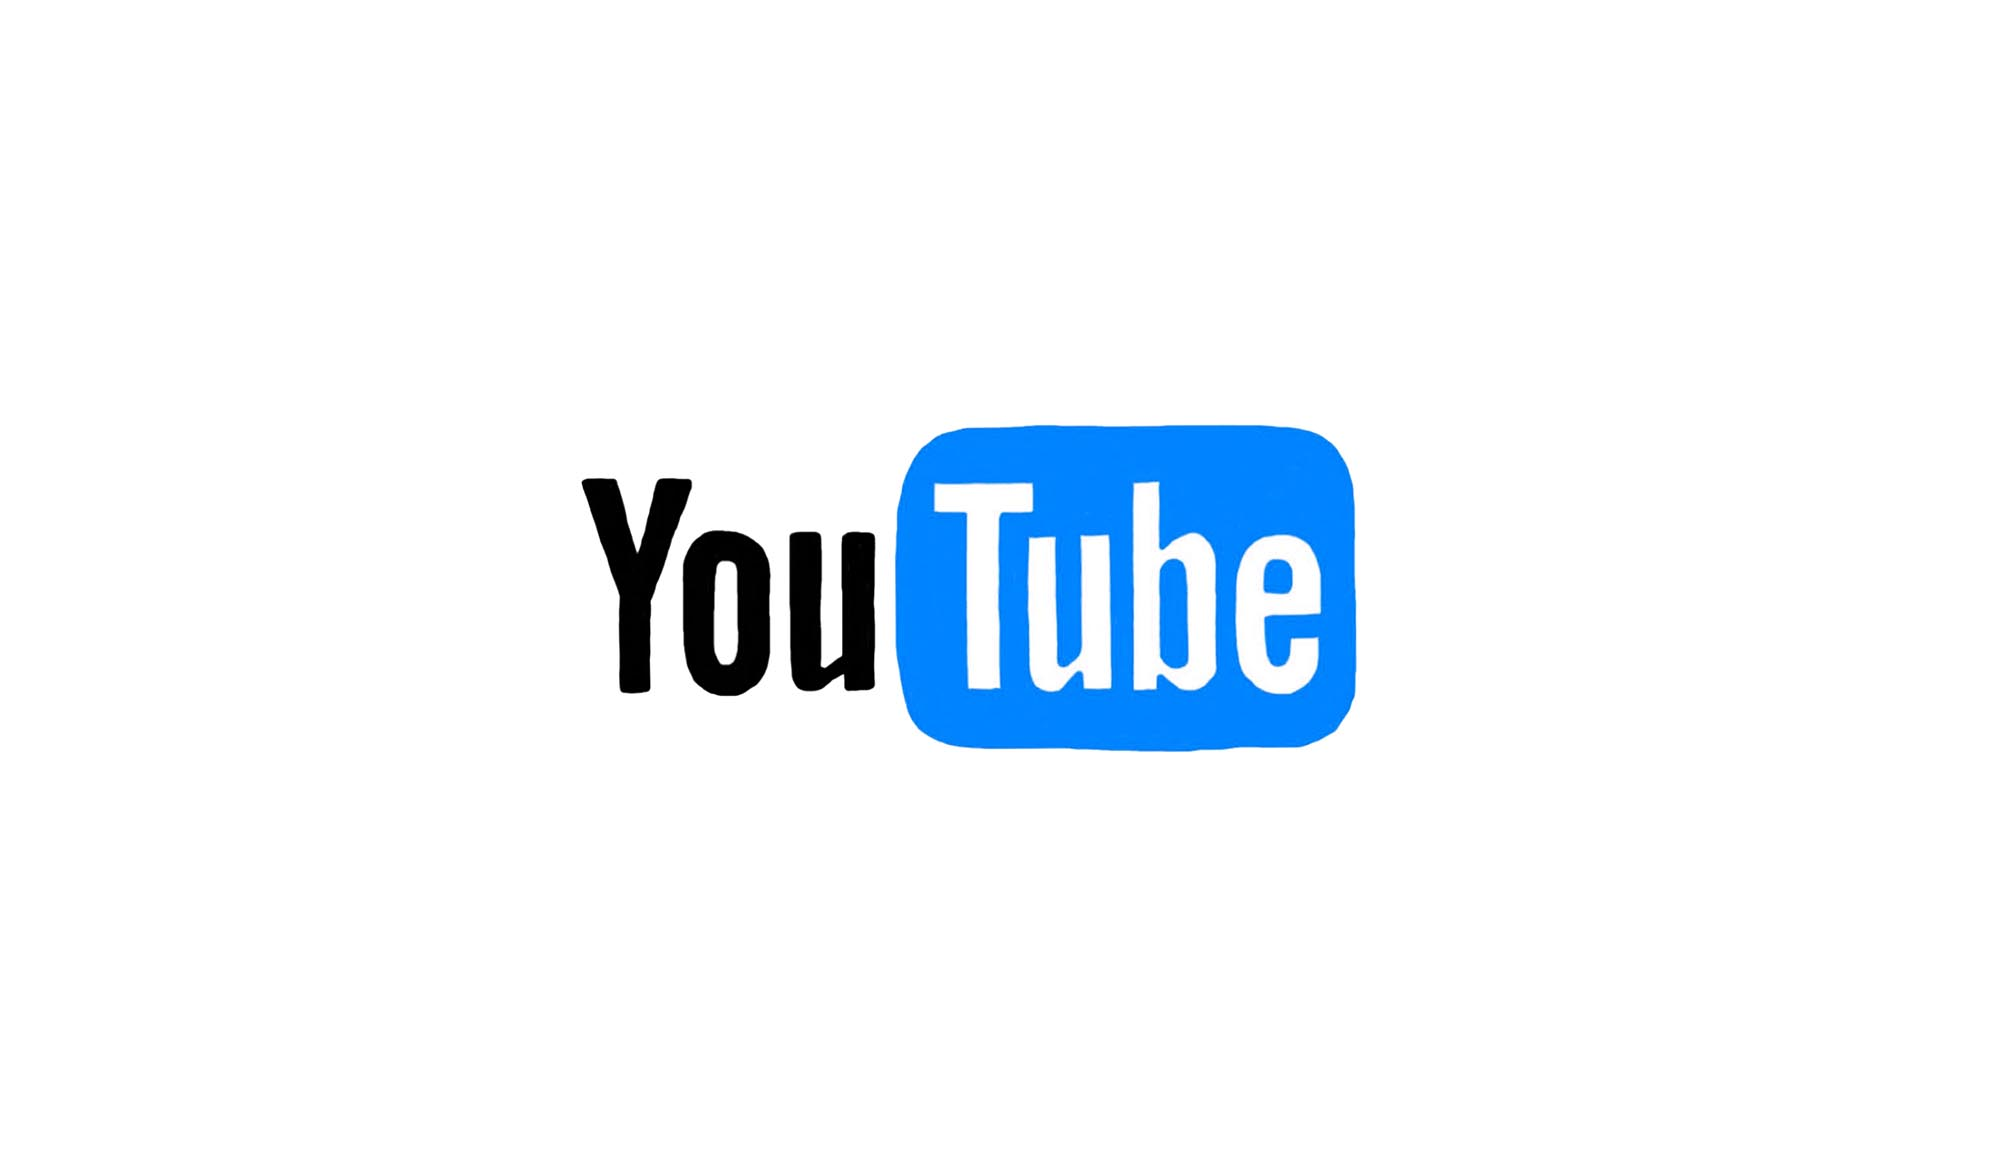 Propy Blog Launched Its YouTube Channel